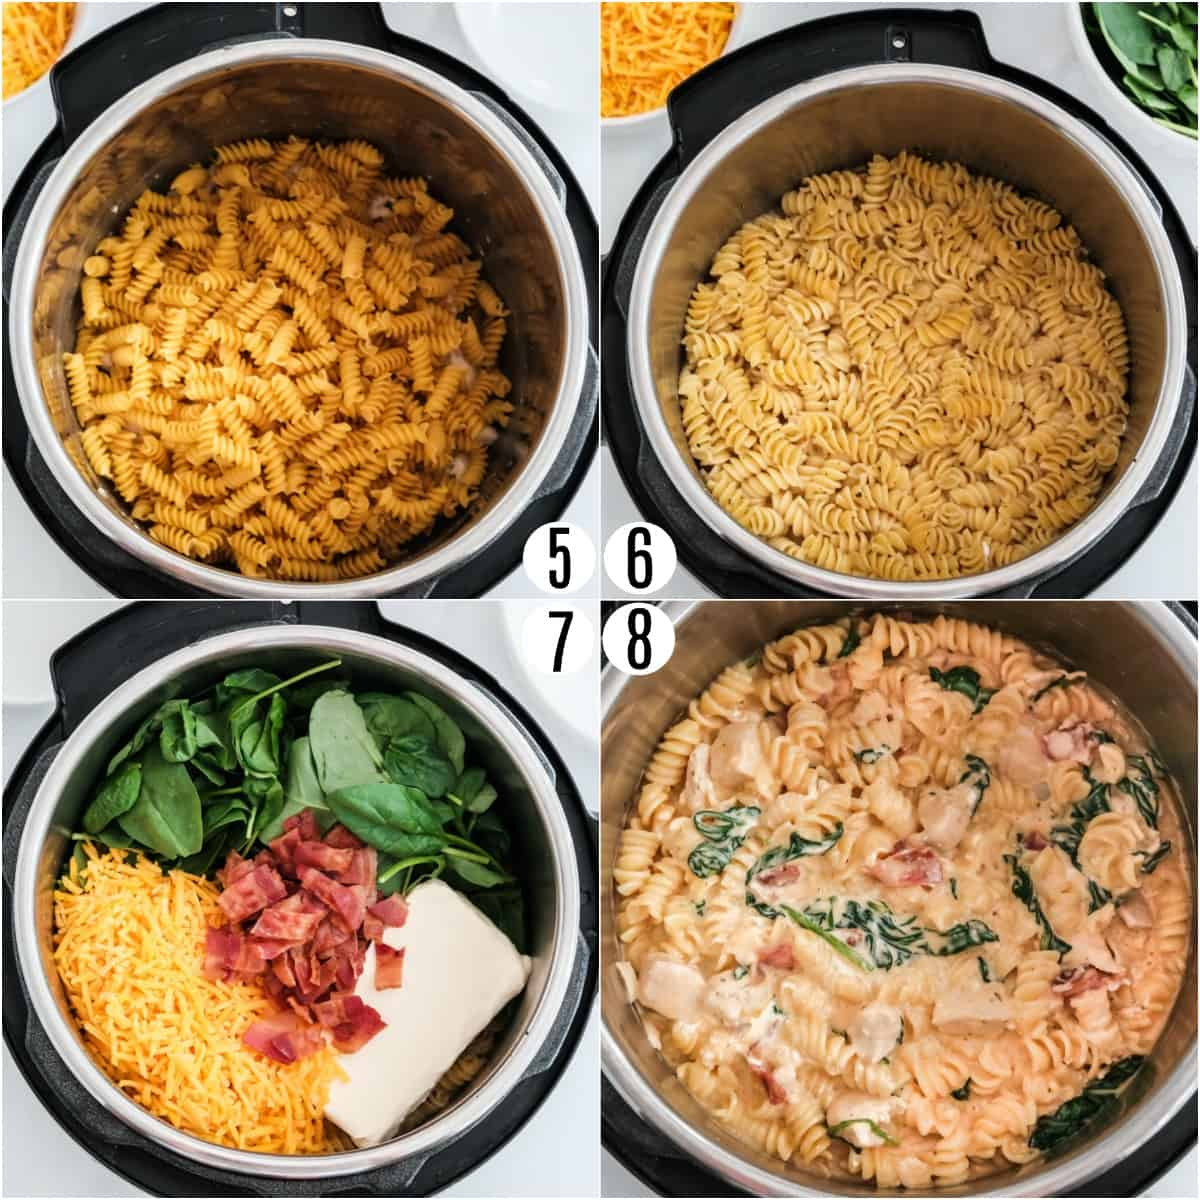 Step by step photos showing how to finish making crack chicken pasta in Instant Pot.